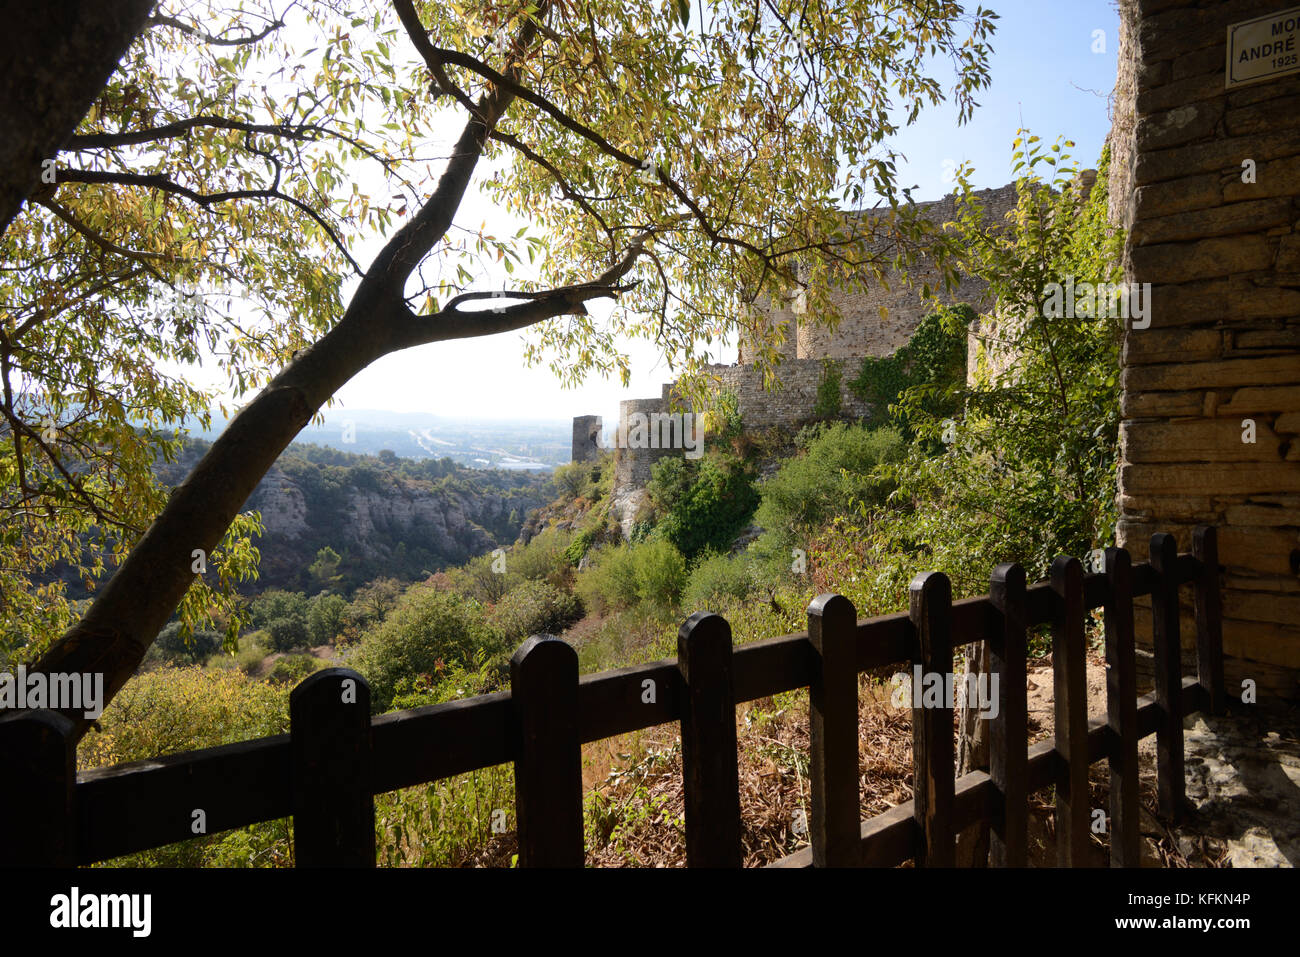 Medieval Mornas Fortress, Château or Castle (c11th-c14th) dominating the Rhône Valley in the Vaucluse - Stock Image